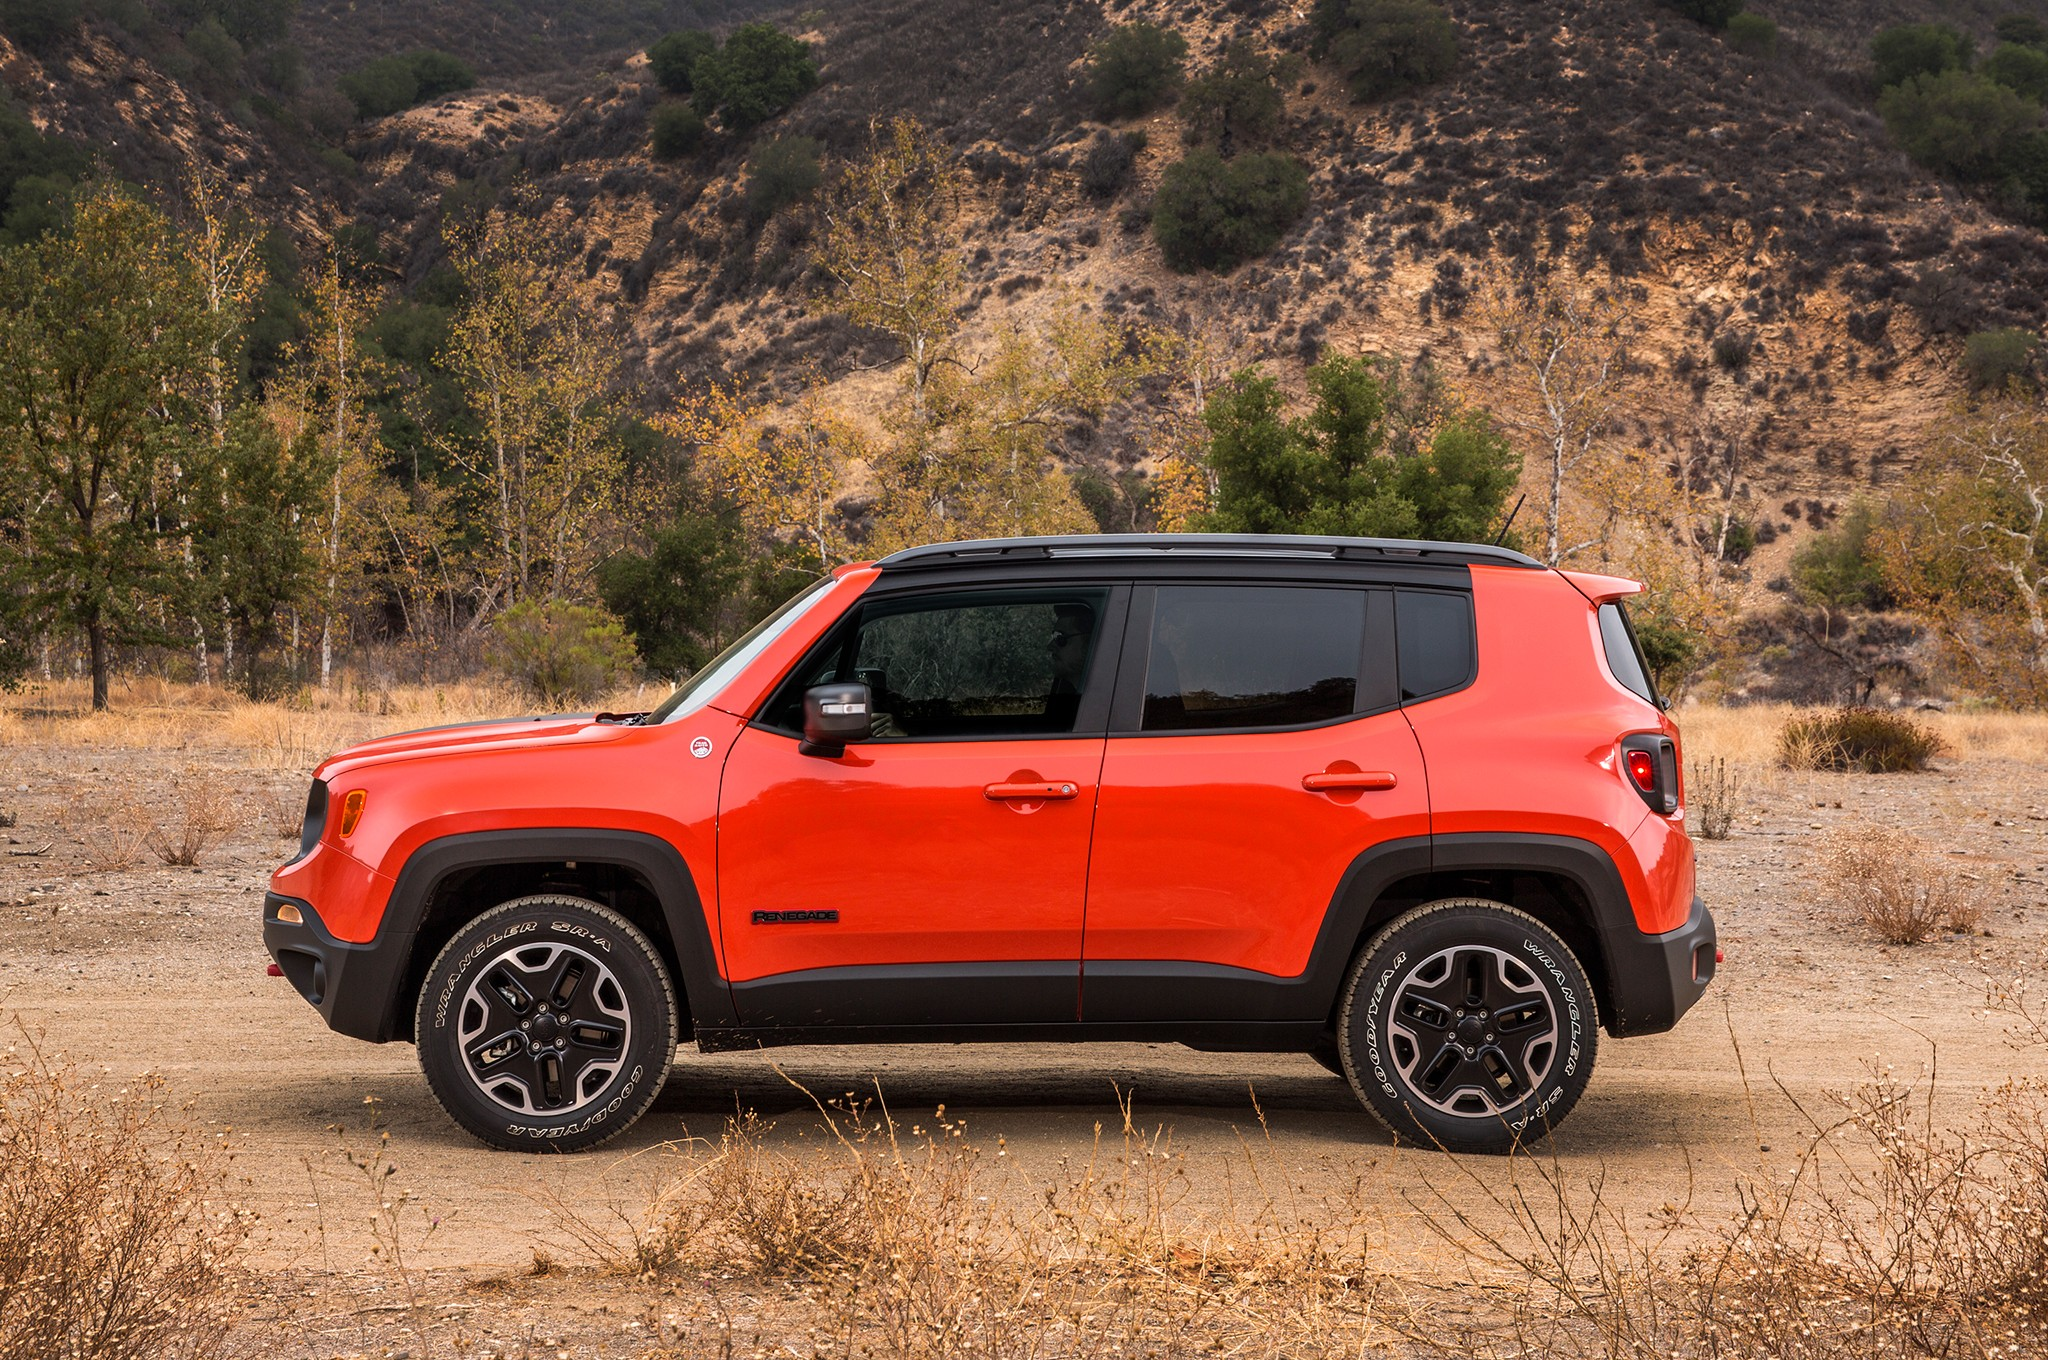 Side view of Jeep Renegade